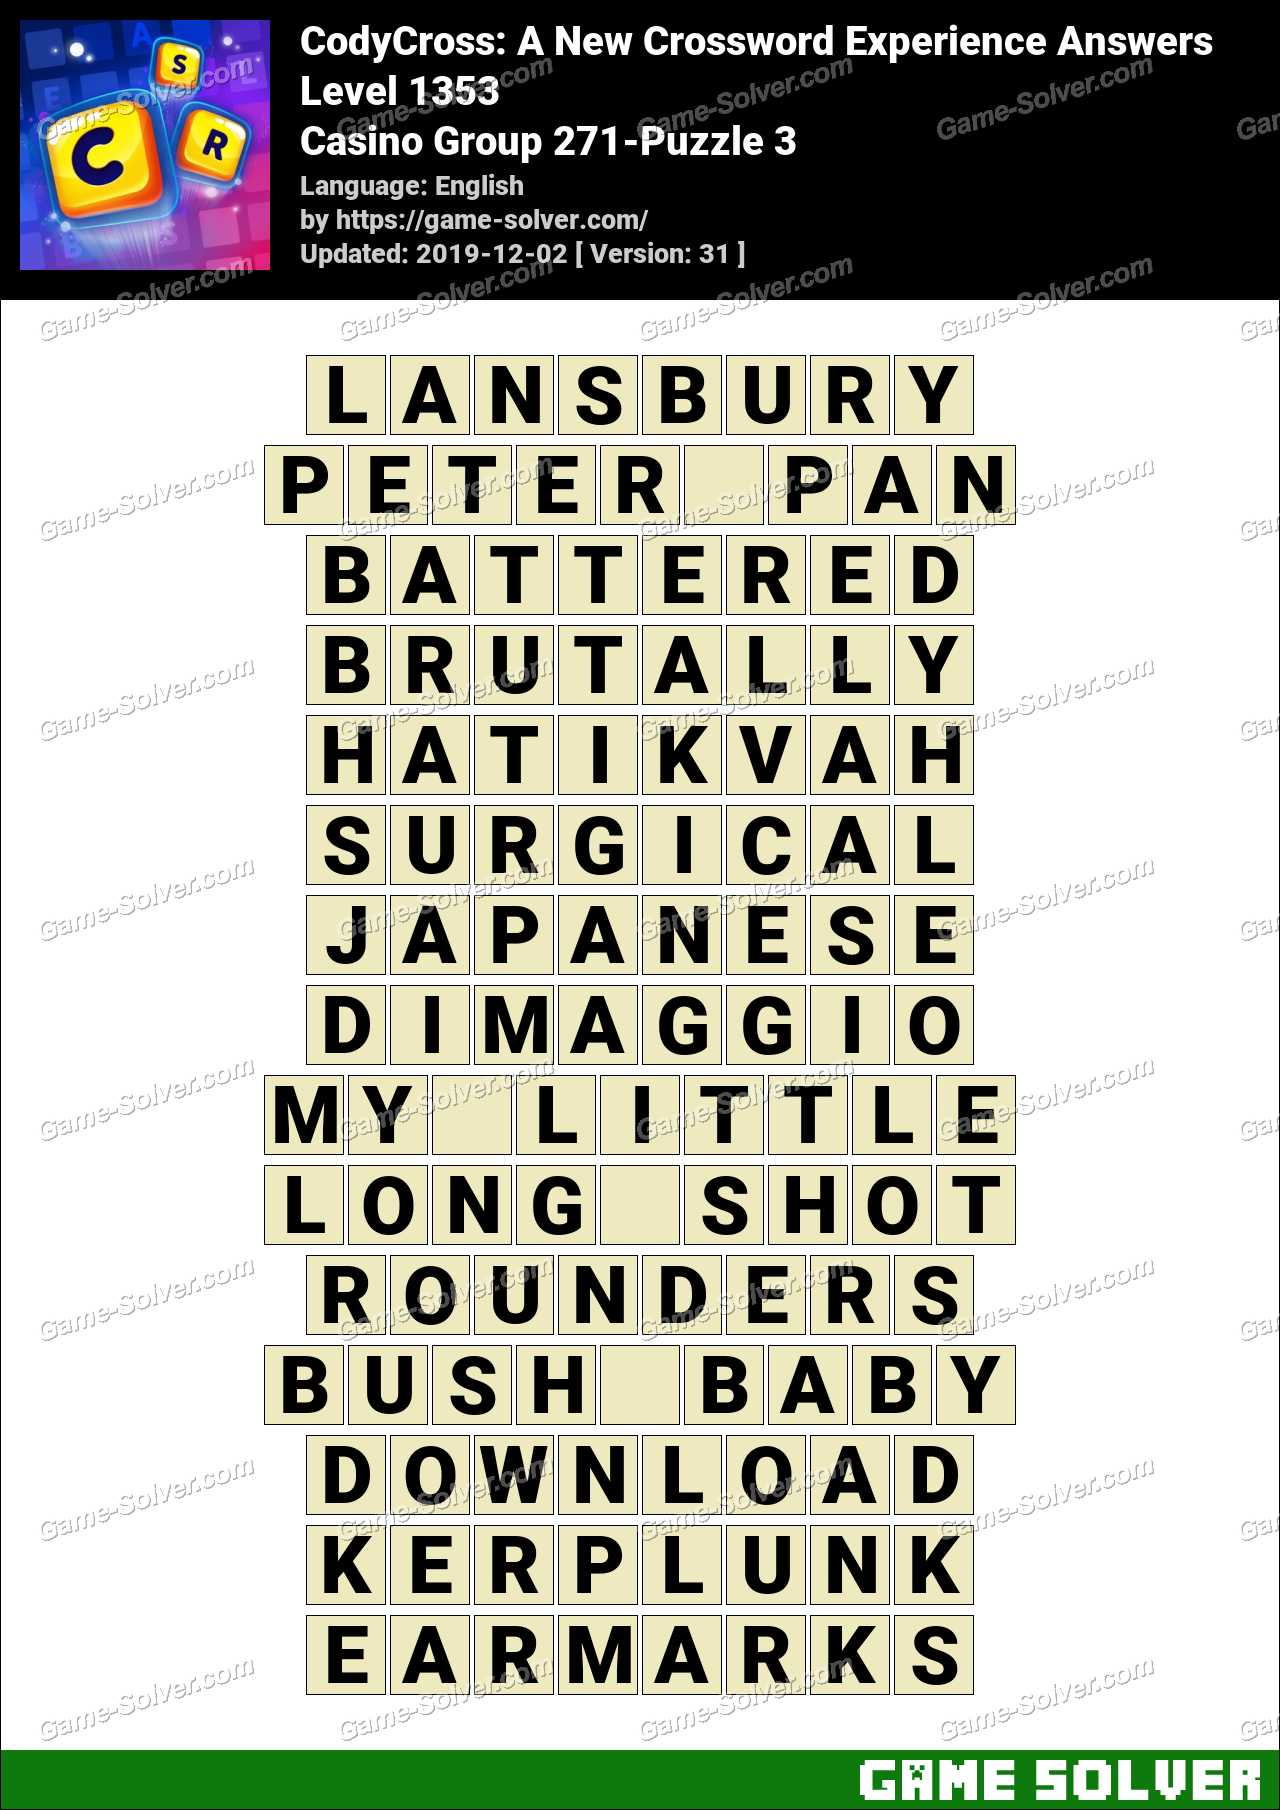 CodyCross Casino Group 271-Puzzle 3 Answers